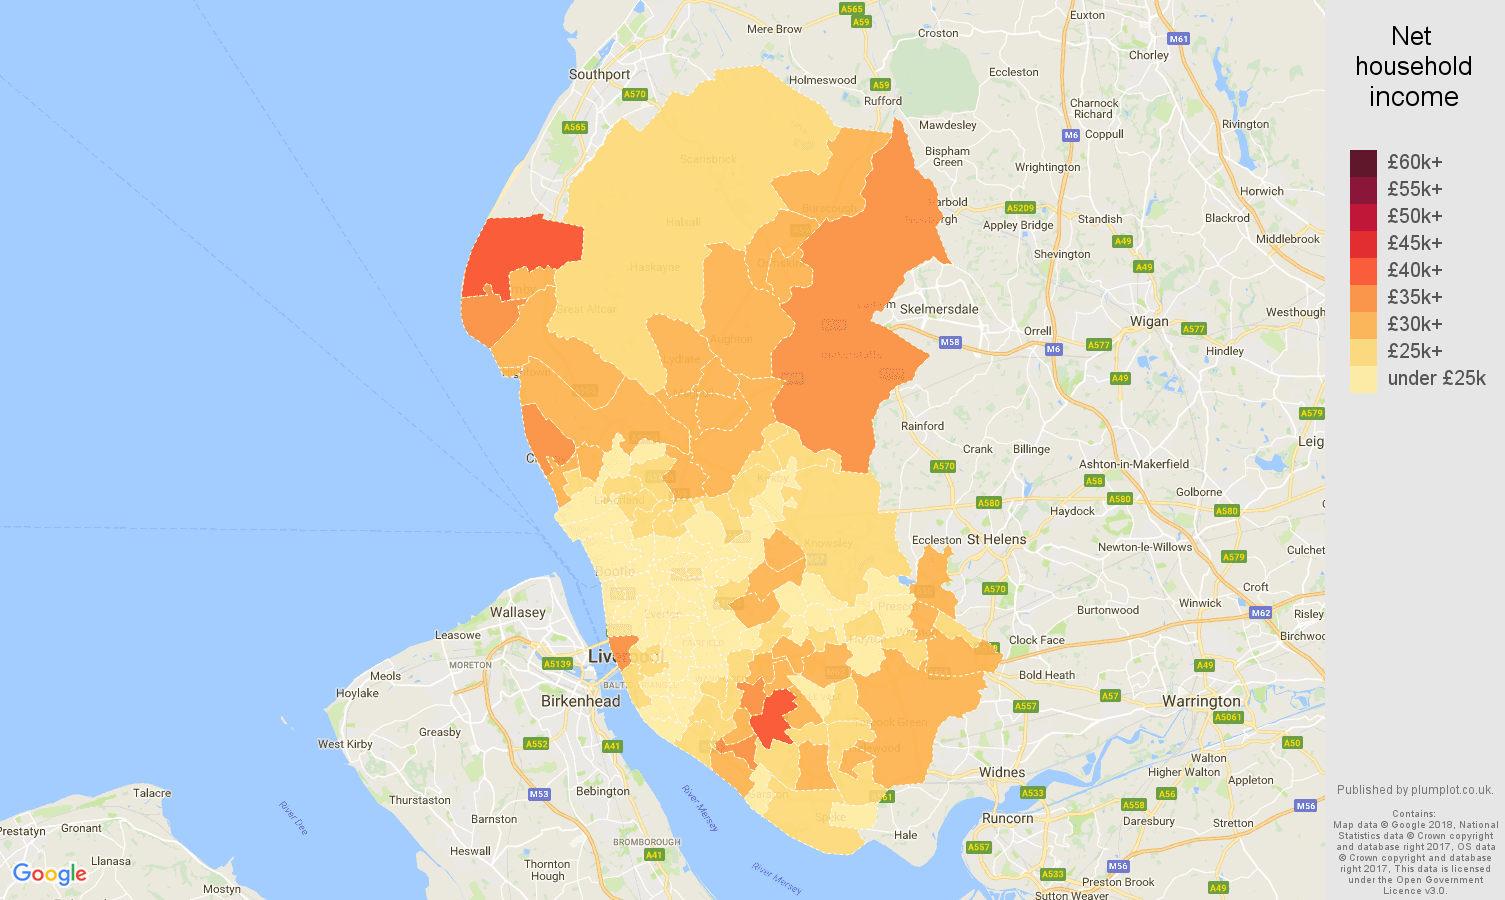 Liverpool net household income map